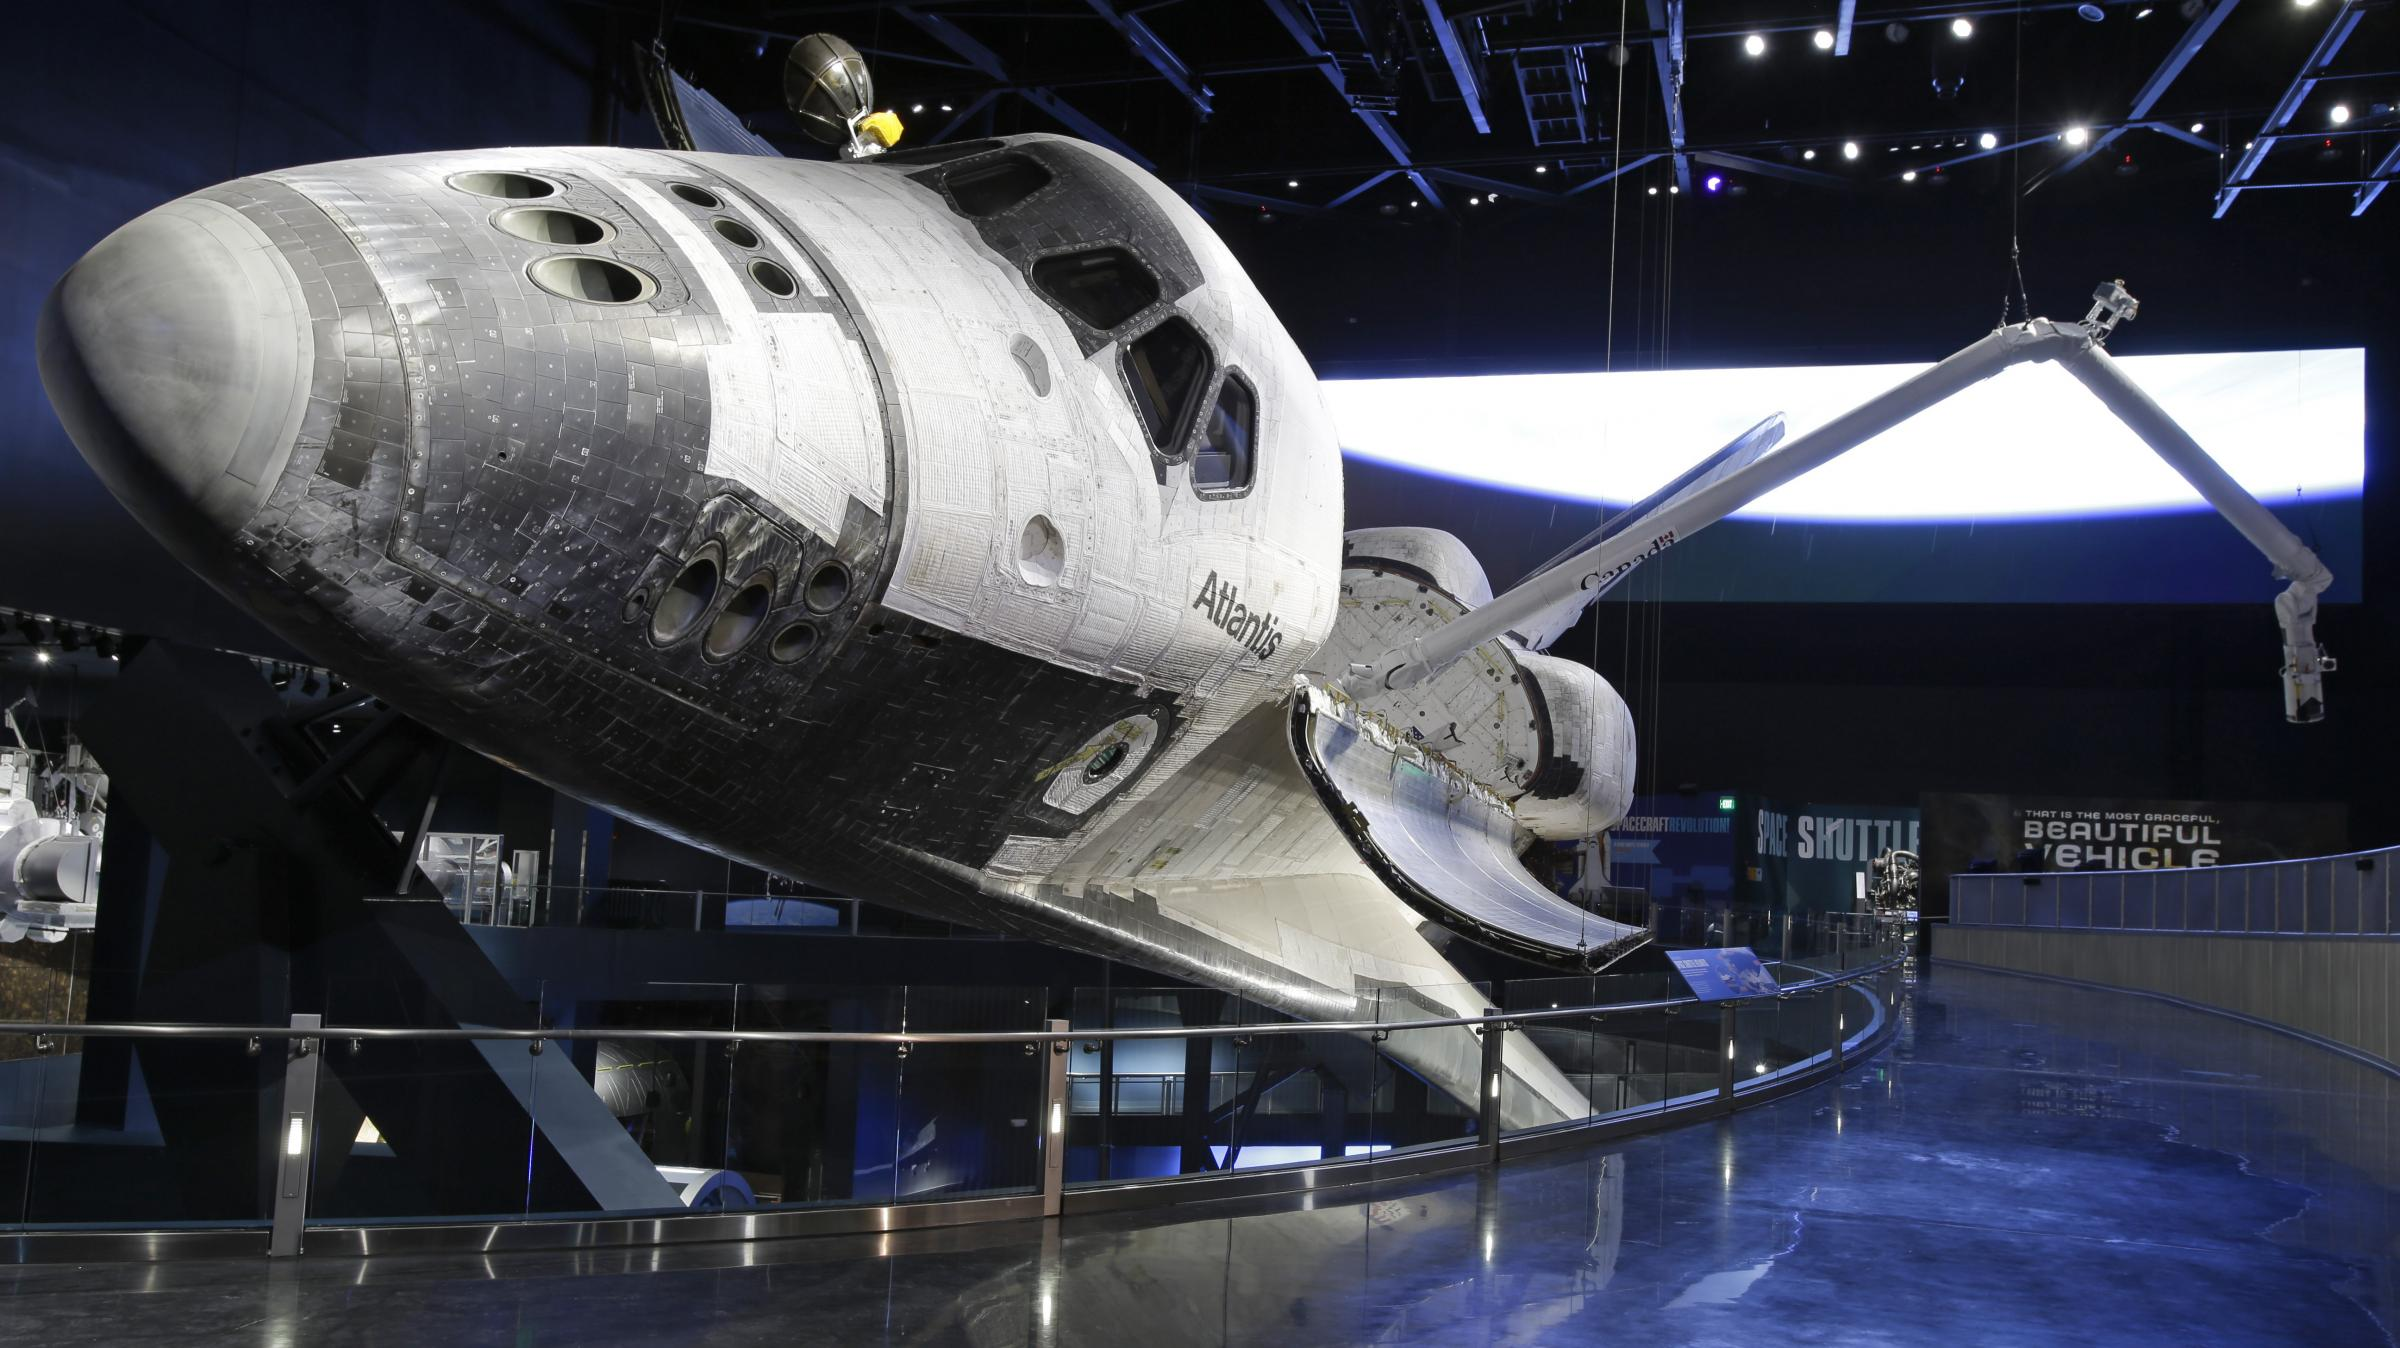 space shuttle atlantis accomplishments - photo #33